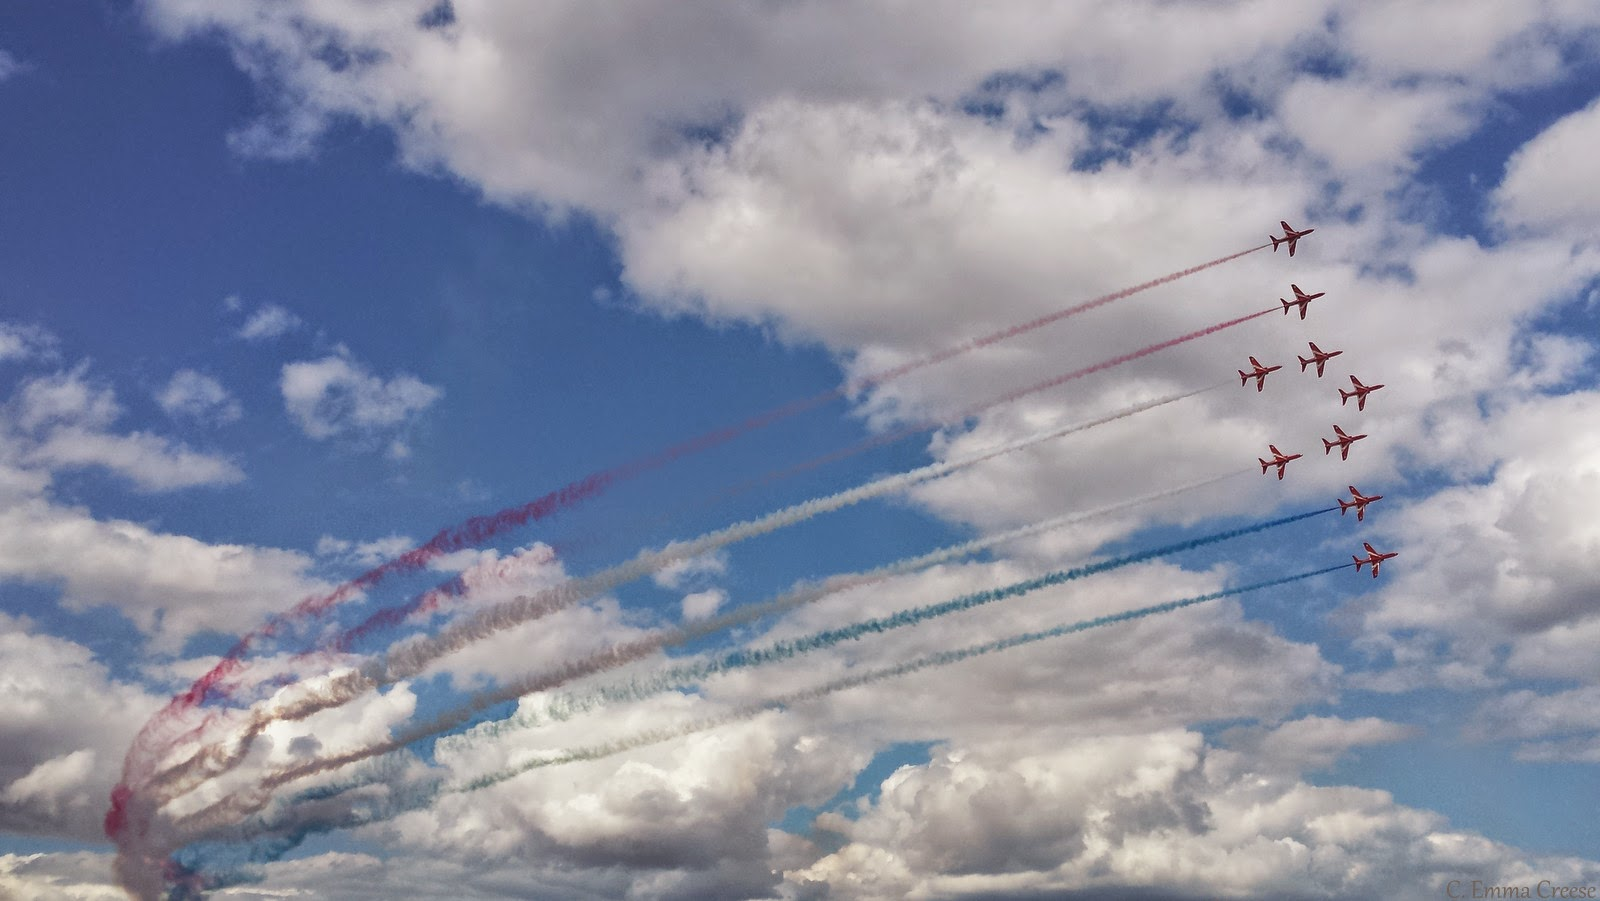 Red Arrows, Grimsby - Adventures of a London Kiwi